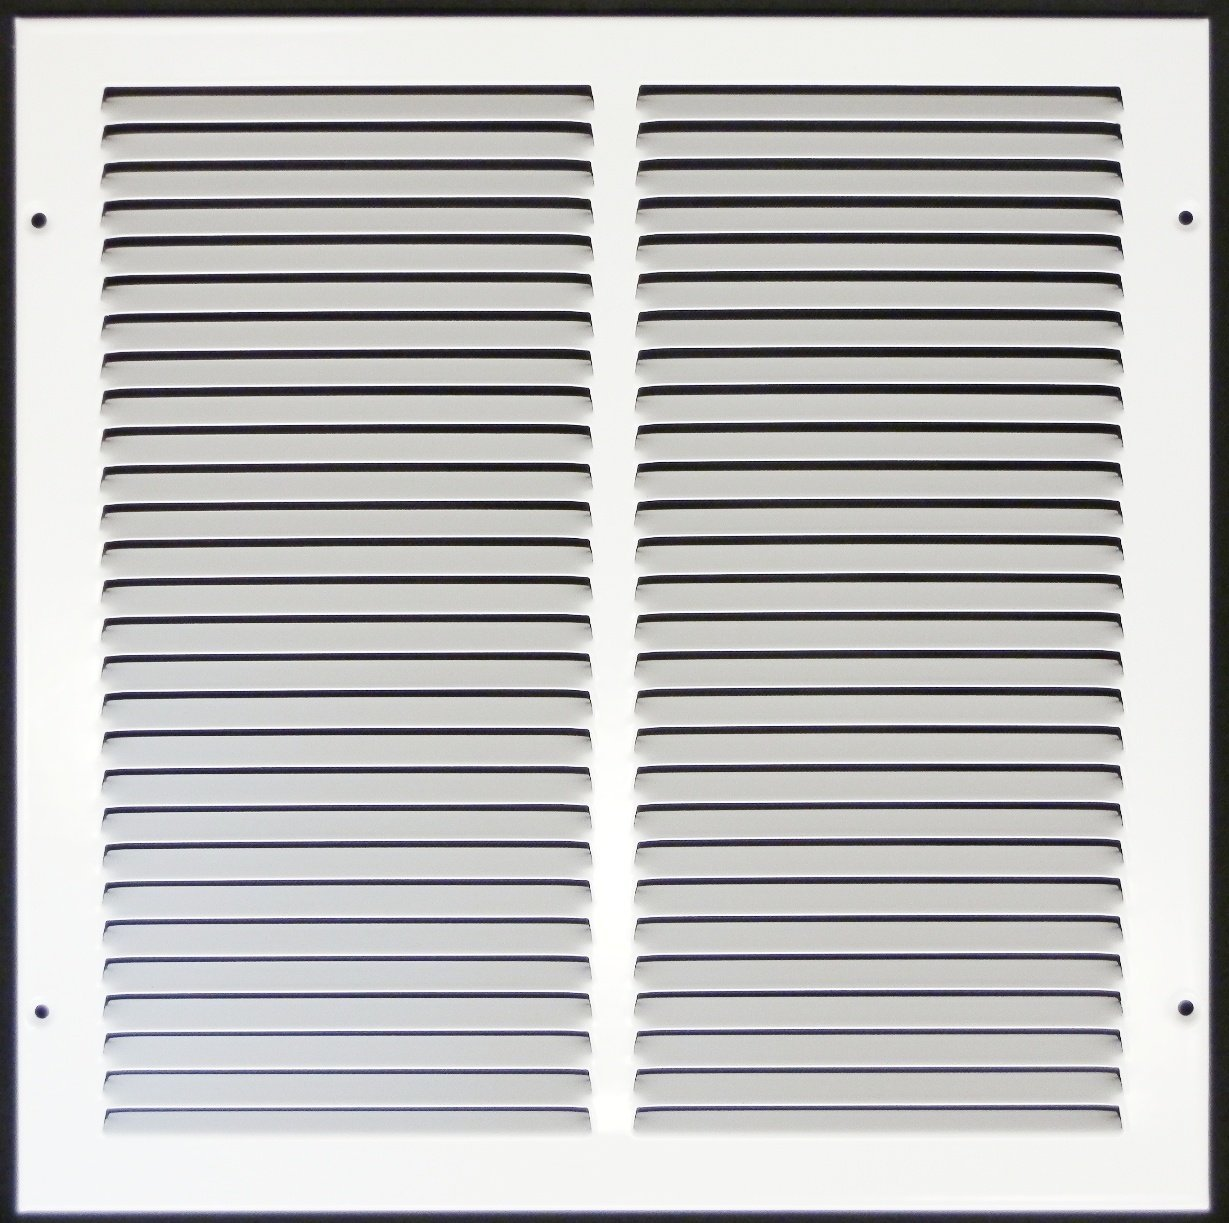 12''w X 12''h Steel Return Air Grilles - Sidewall and Cieling - HVAC DUCT COVER - White [Outer Dimensions: 13.75''w X 13.75''h]